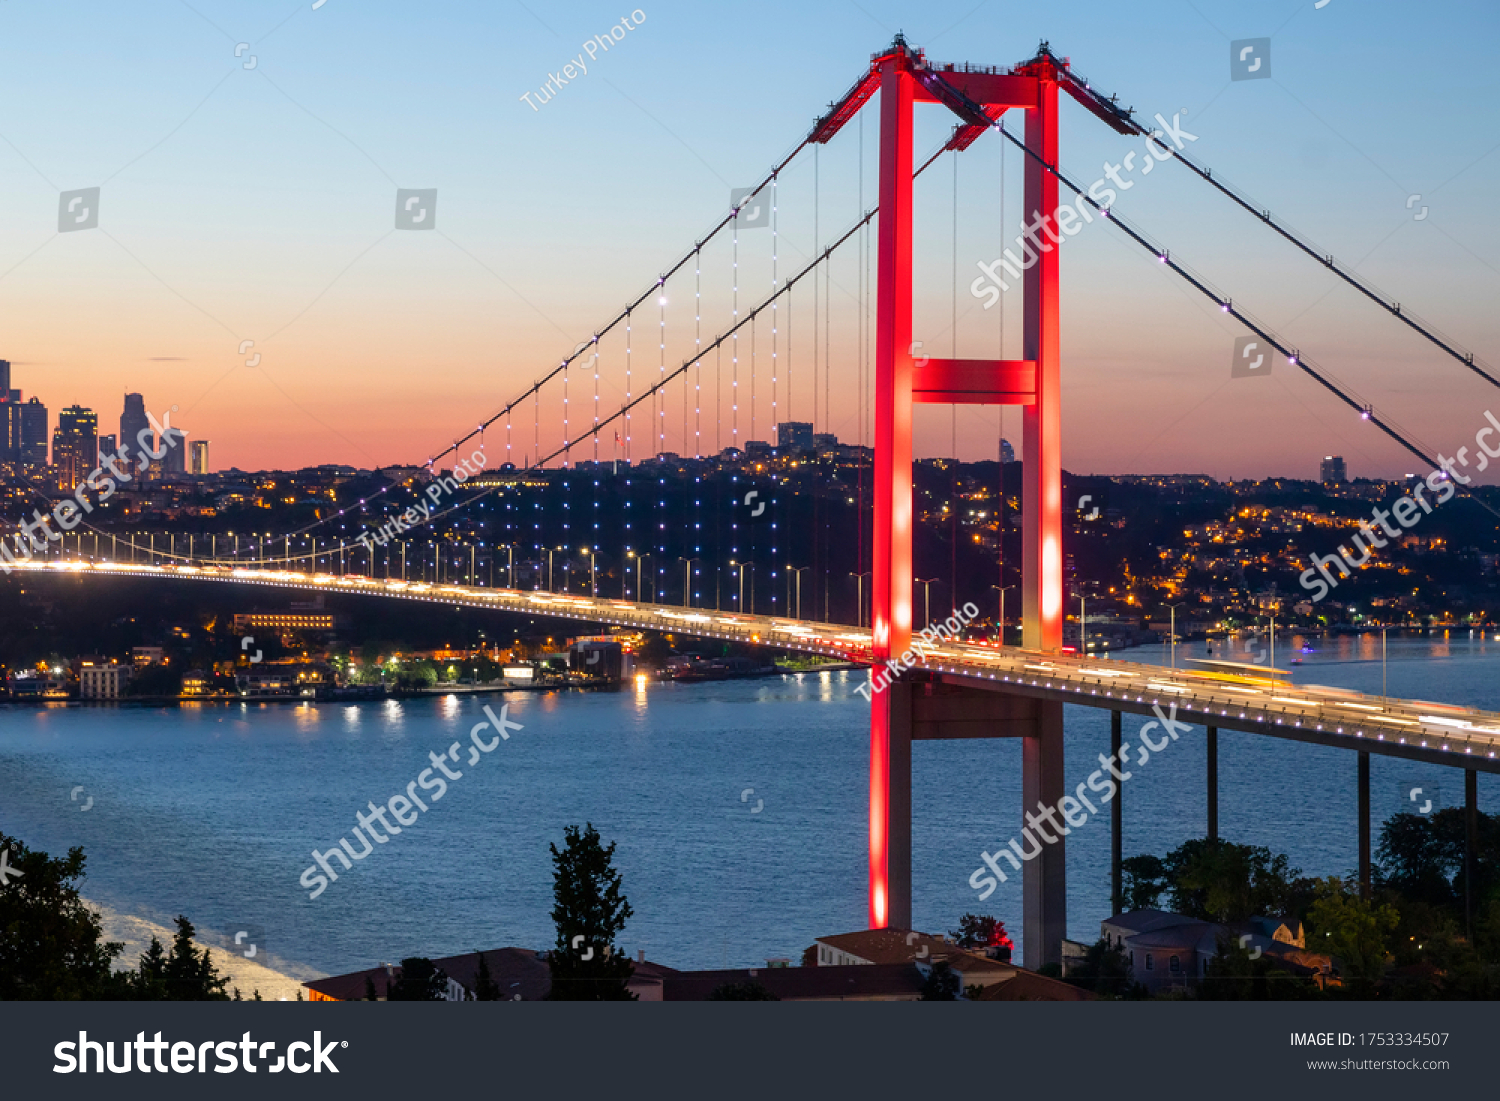 stock-photo-istanbul-panoramic-sunset-th